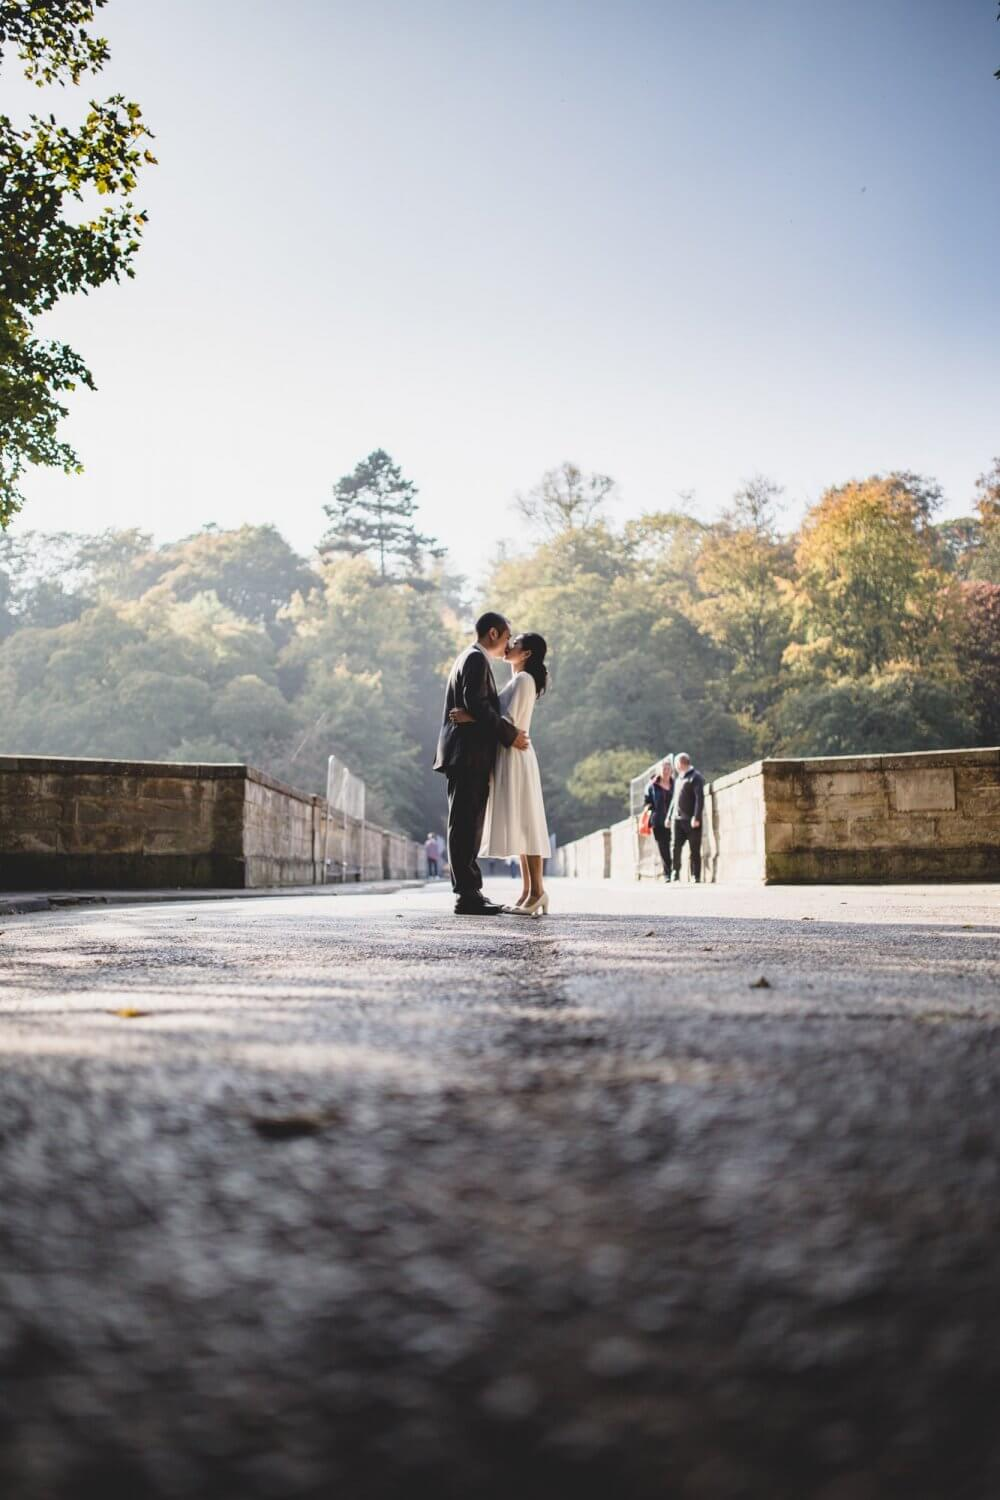 Preweddings destination wedding photography jonnee shek northeast newcastle upon tyne uk